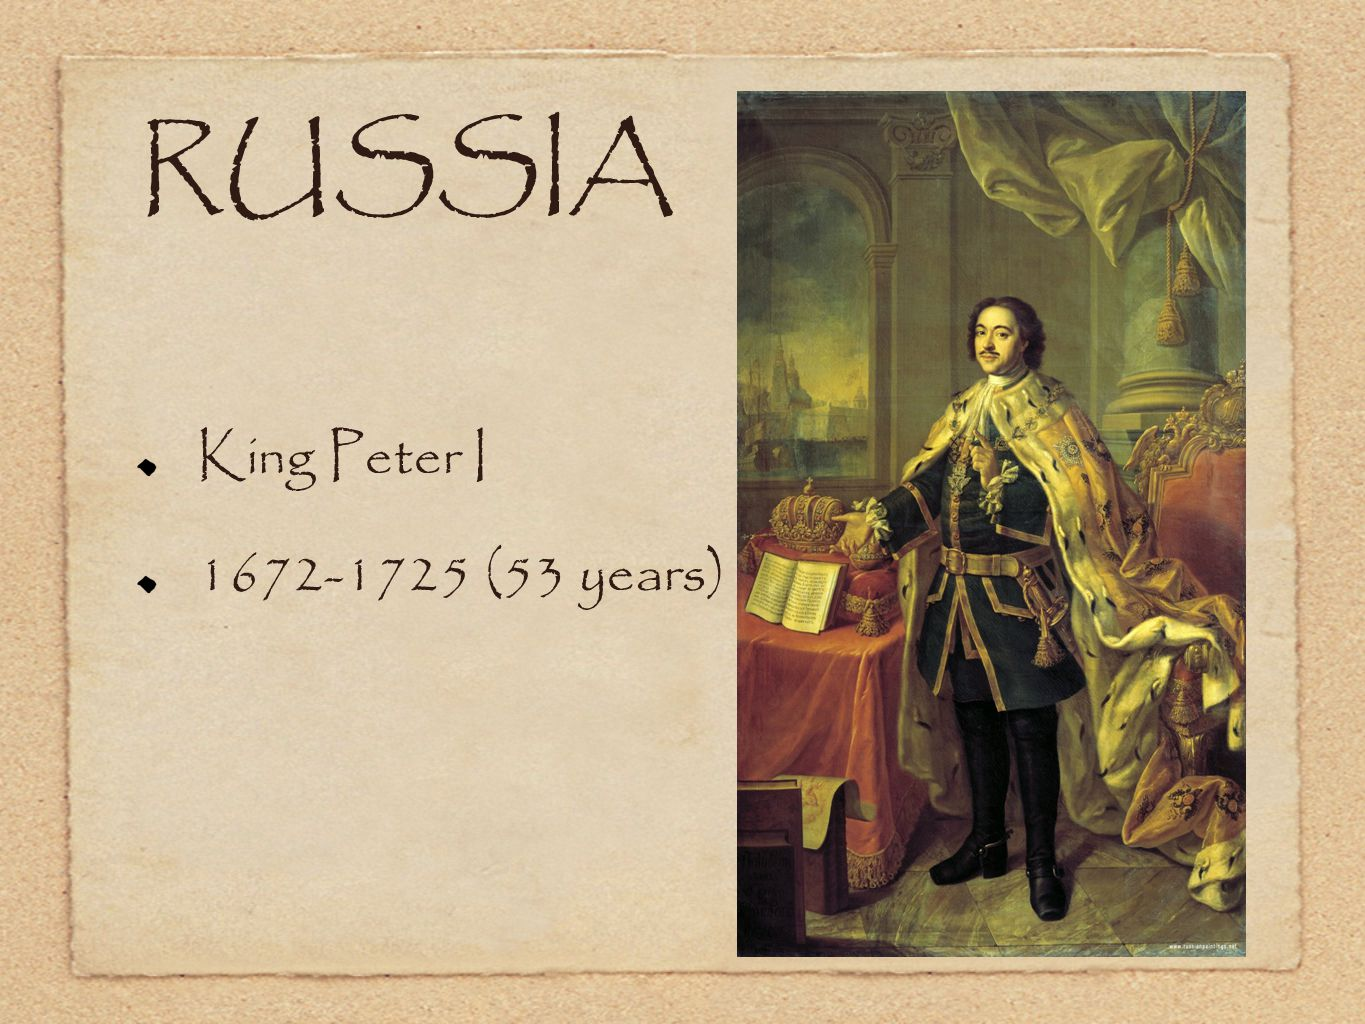 RUSSIA King Peter I 1672-1725 (53 years)